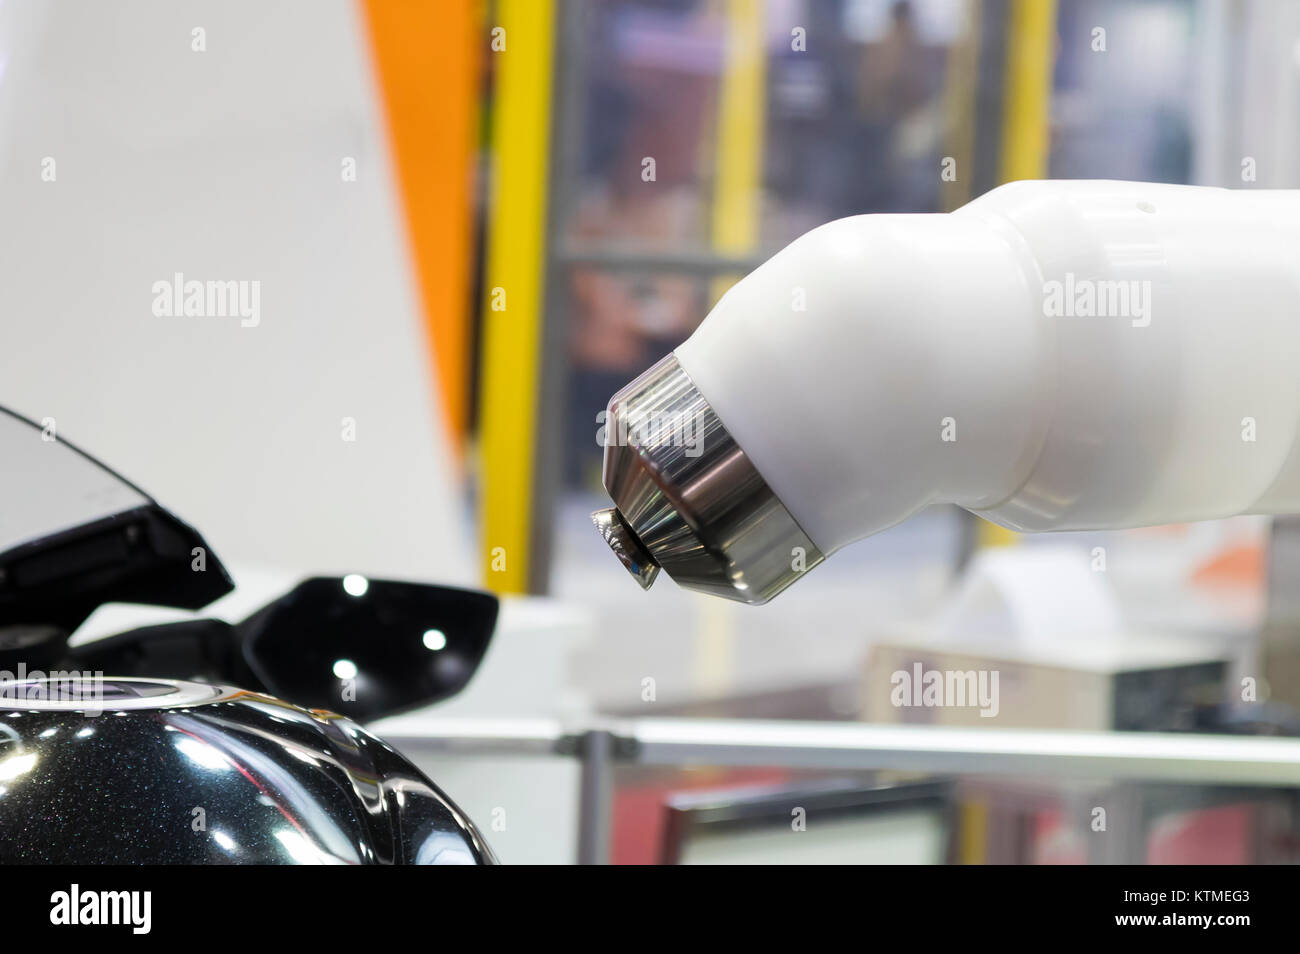 Spray painting robot and body part ; close up - Stock Image